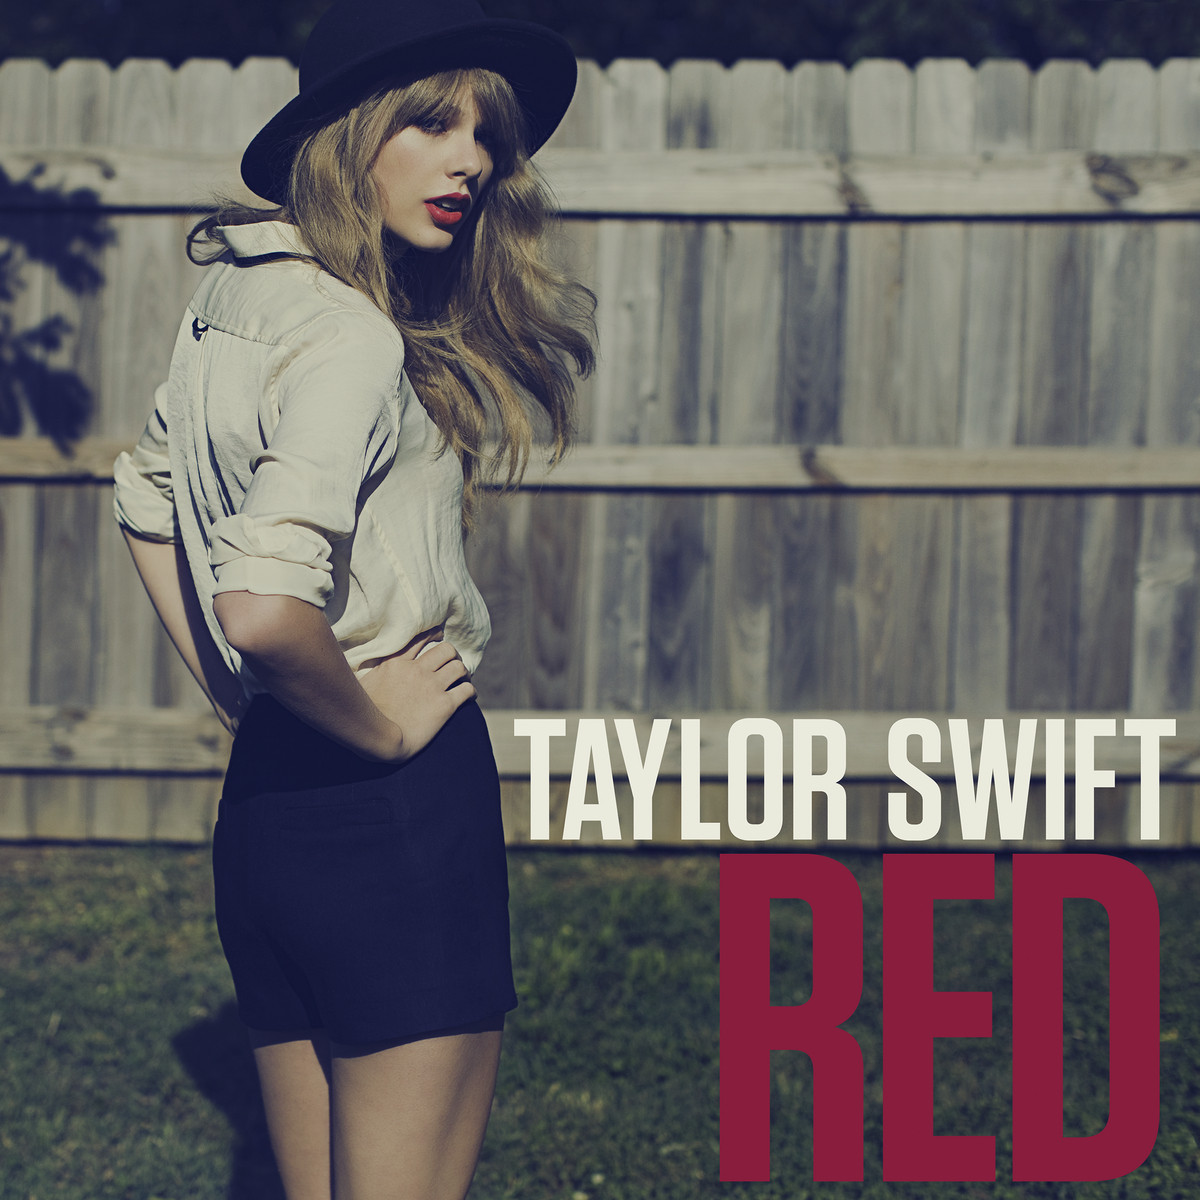 Red Music Video Audio By Taylor Swift This Is My Jam